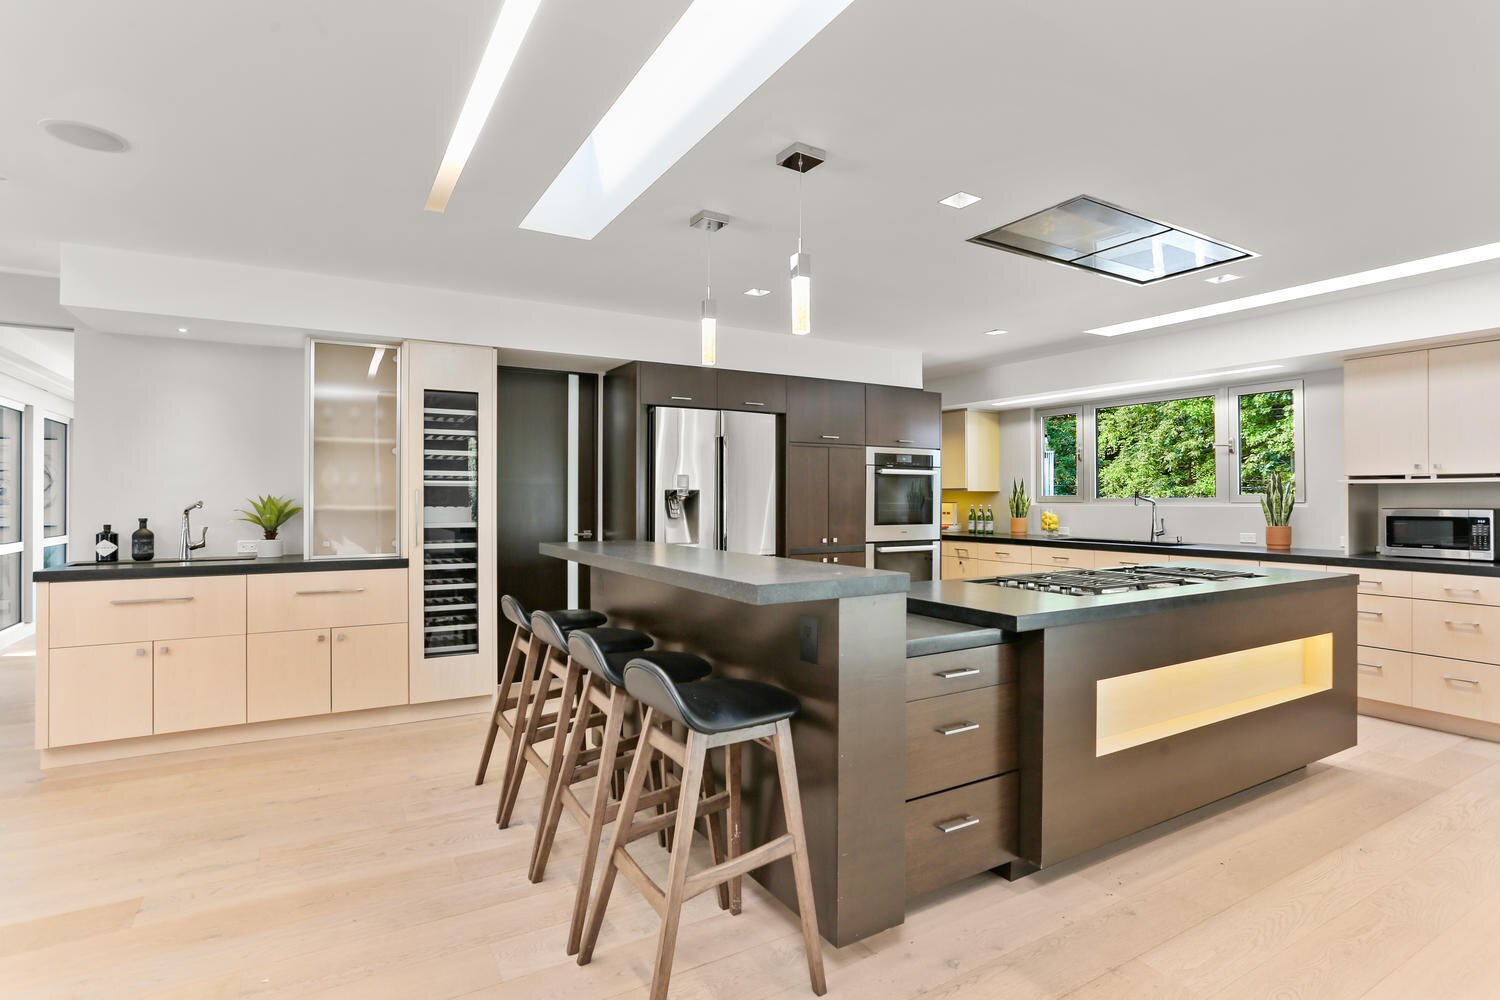 Modern home with Kitchen, Refrigerator, Granite Counter, Ceiling Lighting, and Cooktops. Kitchen with Skylight  Photo 15 of A Gut Renovated MidCentury Modern Green Energy Home for Luxury Winter Living for $4.65m